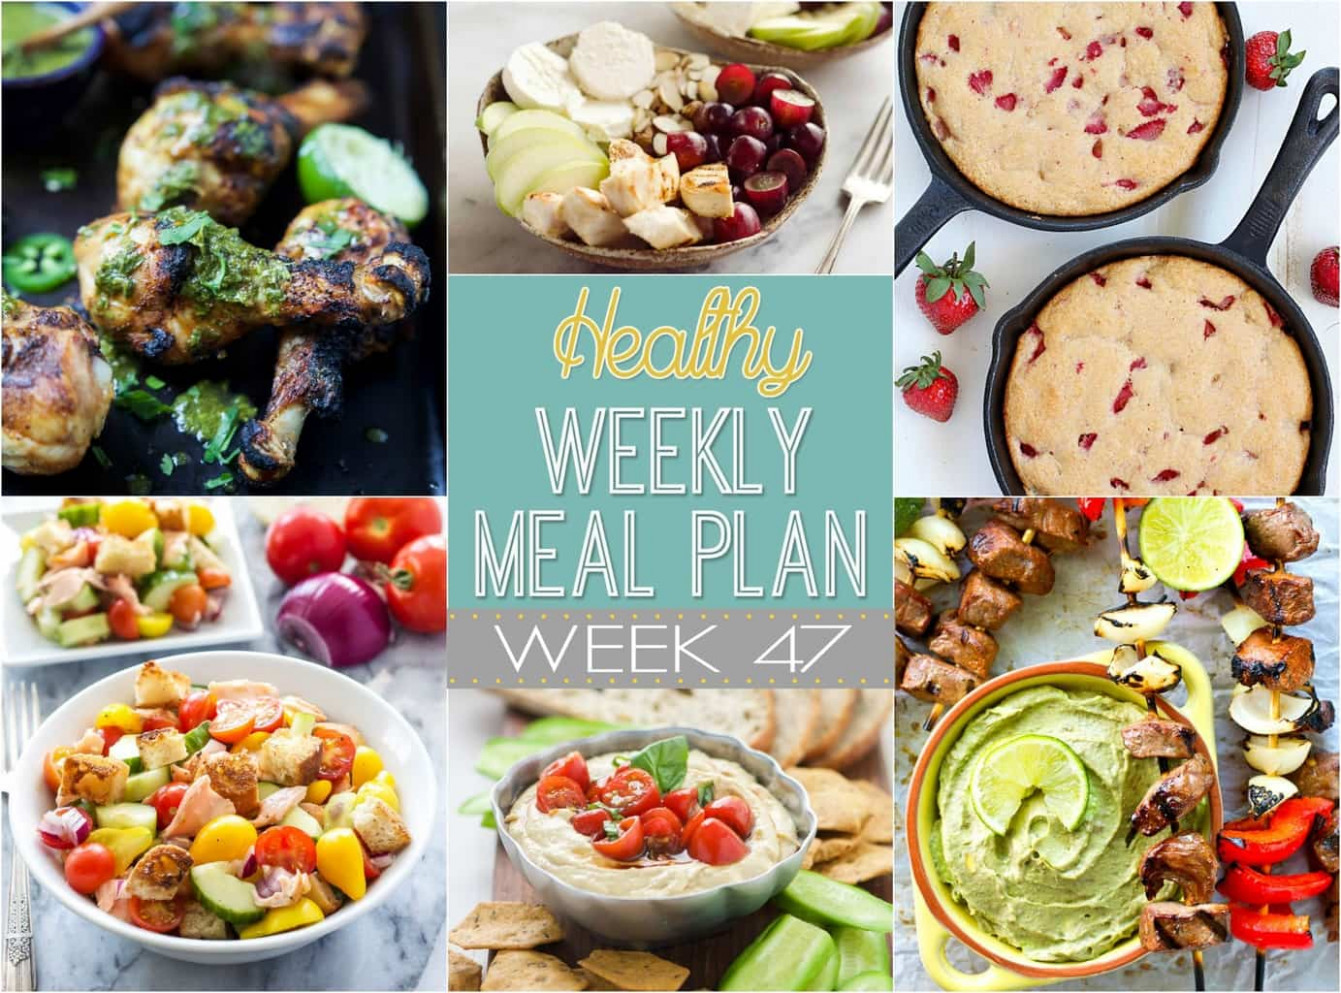 Healthy Weekly Meal Plan #47 - Yummy Healthy Easy